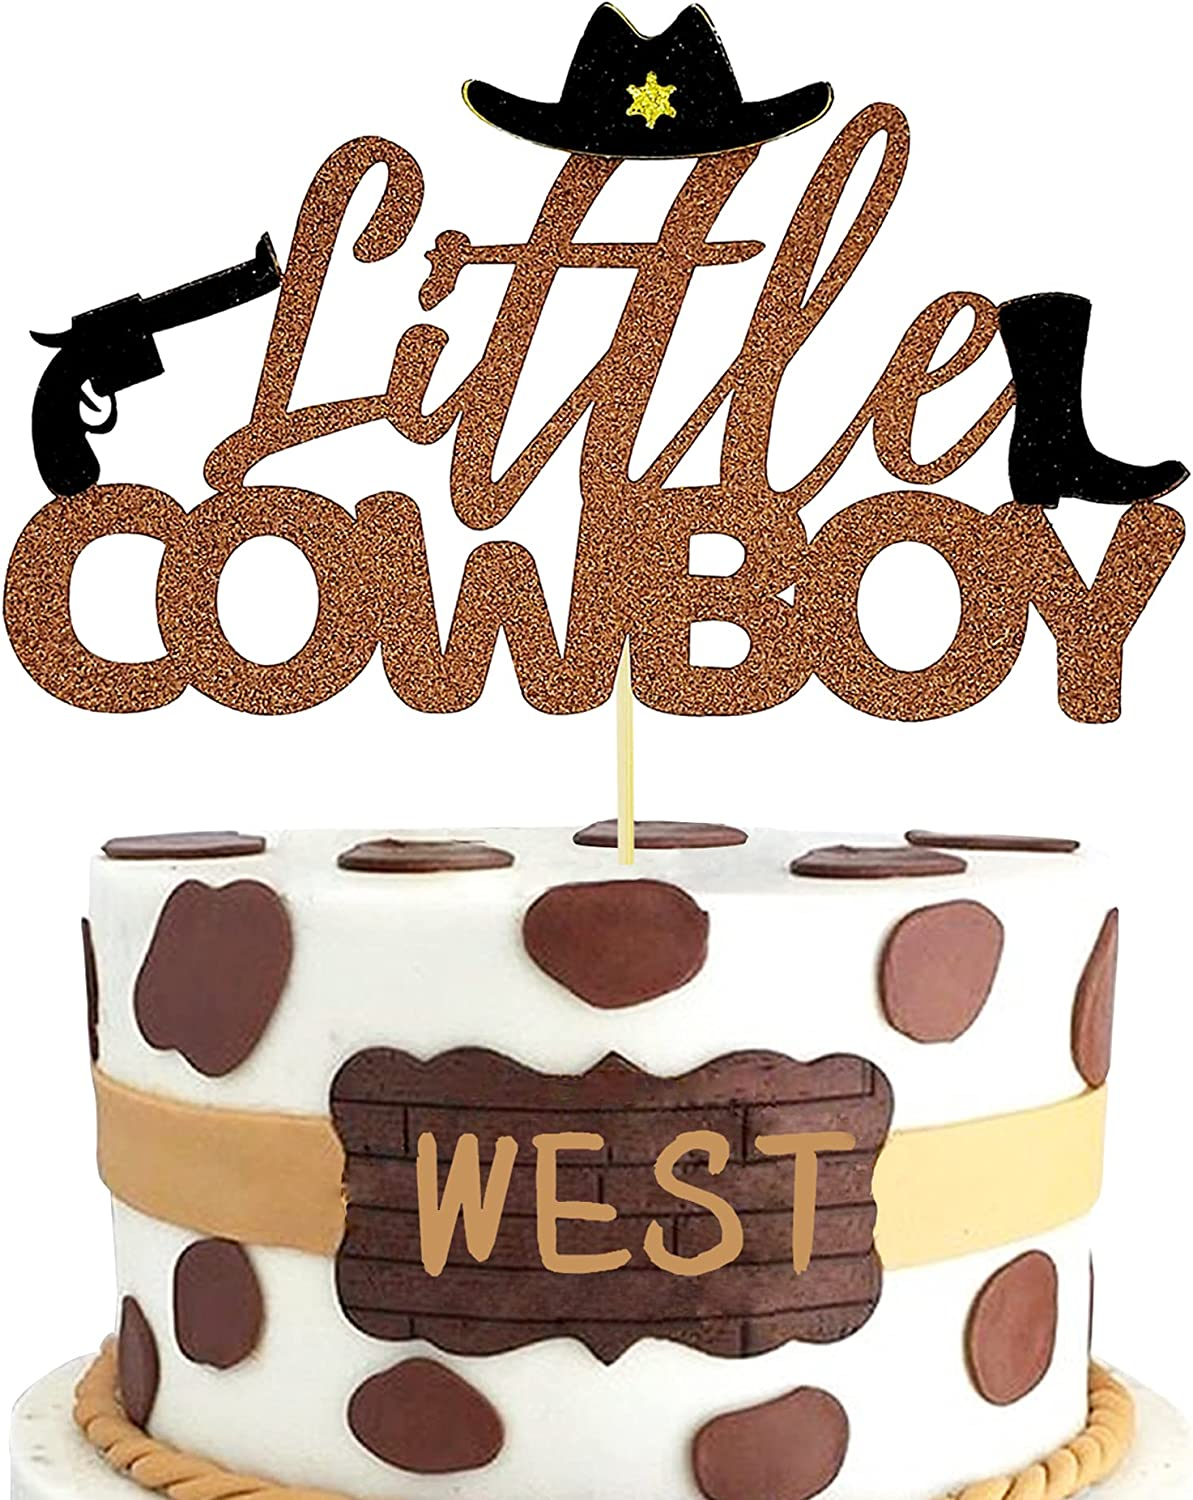 Glitter Little Cowboy Cake Topper Wild West Decor forWestern Theme Party Boy Birthday Party Baby Shower